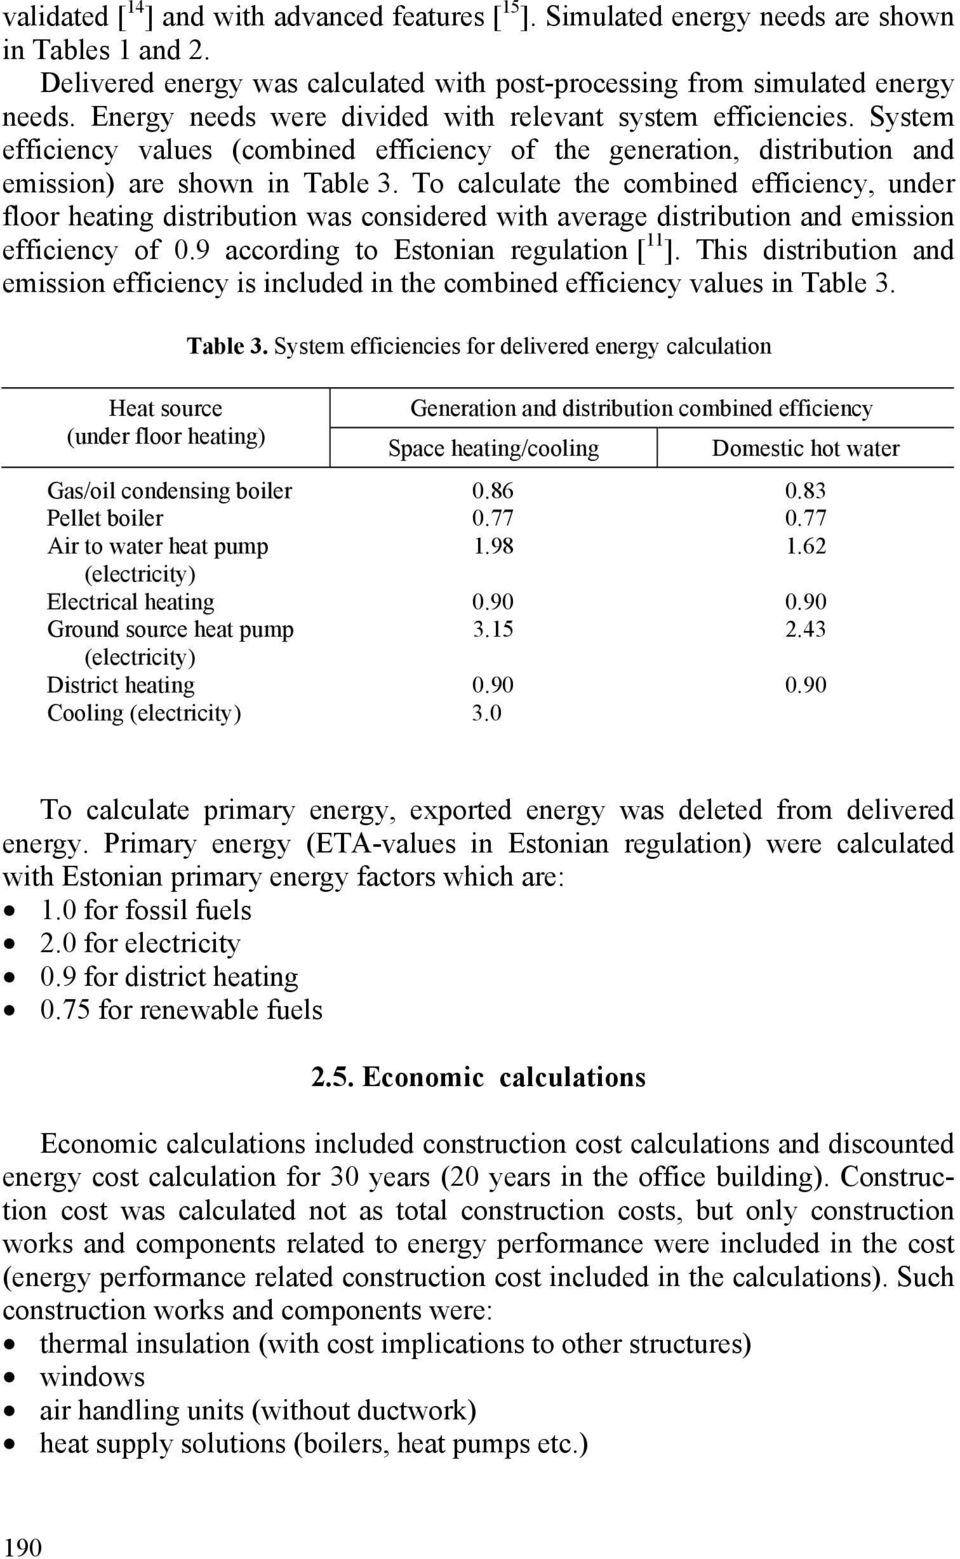 To calculate the combined efficiency, under floor heating distribution was considered with average distribution and emission efficiency of 0.9 according to Estonian regulation [ 11 ].